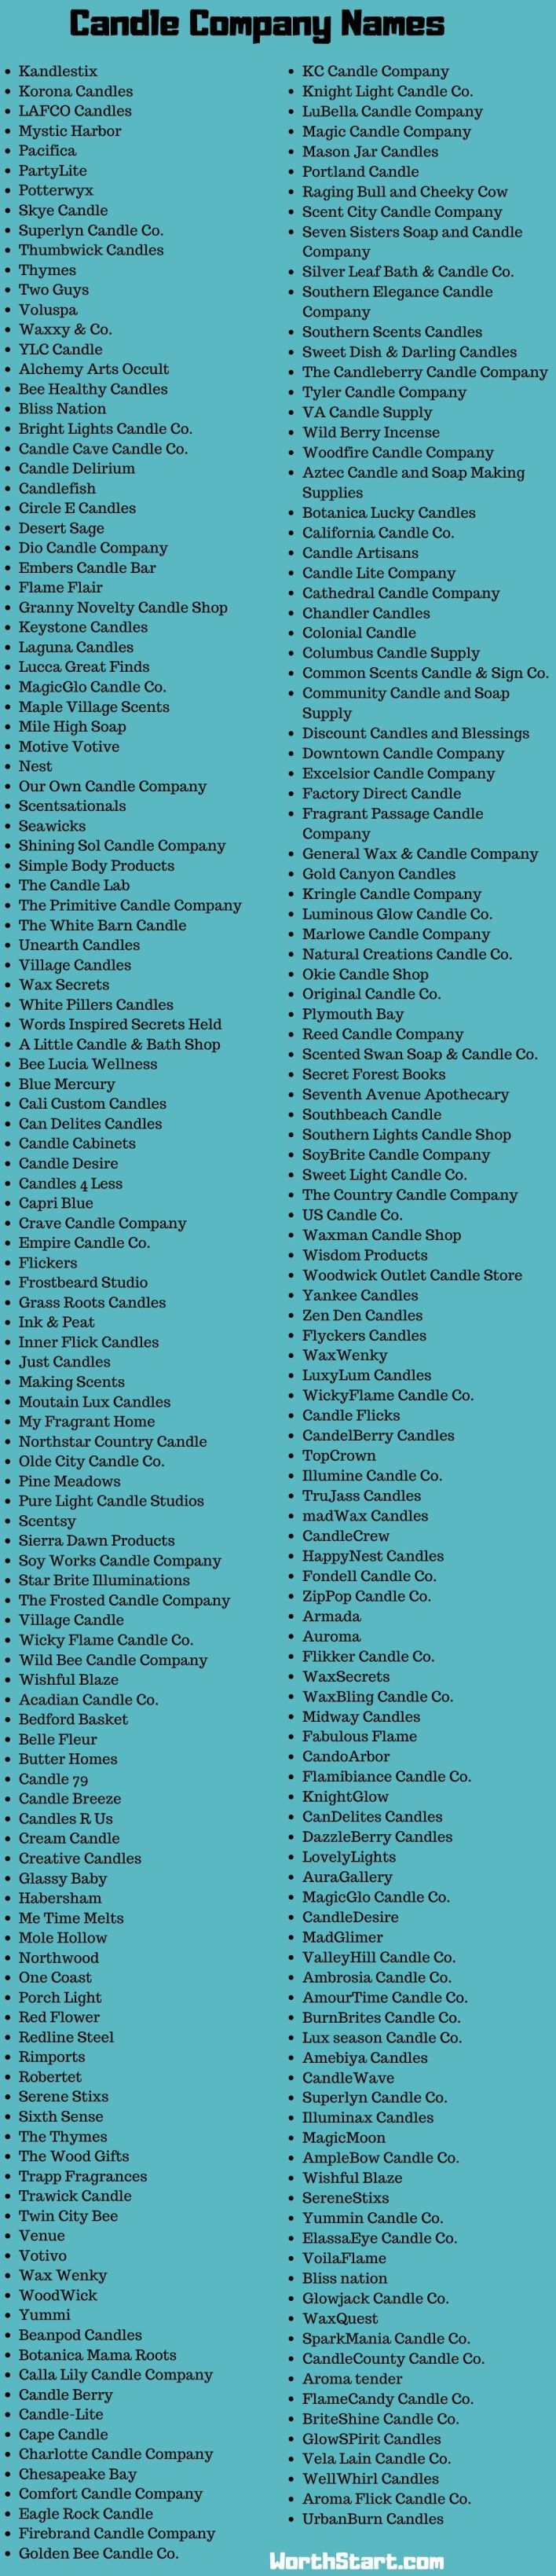 candle business names list